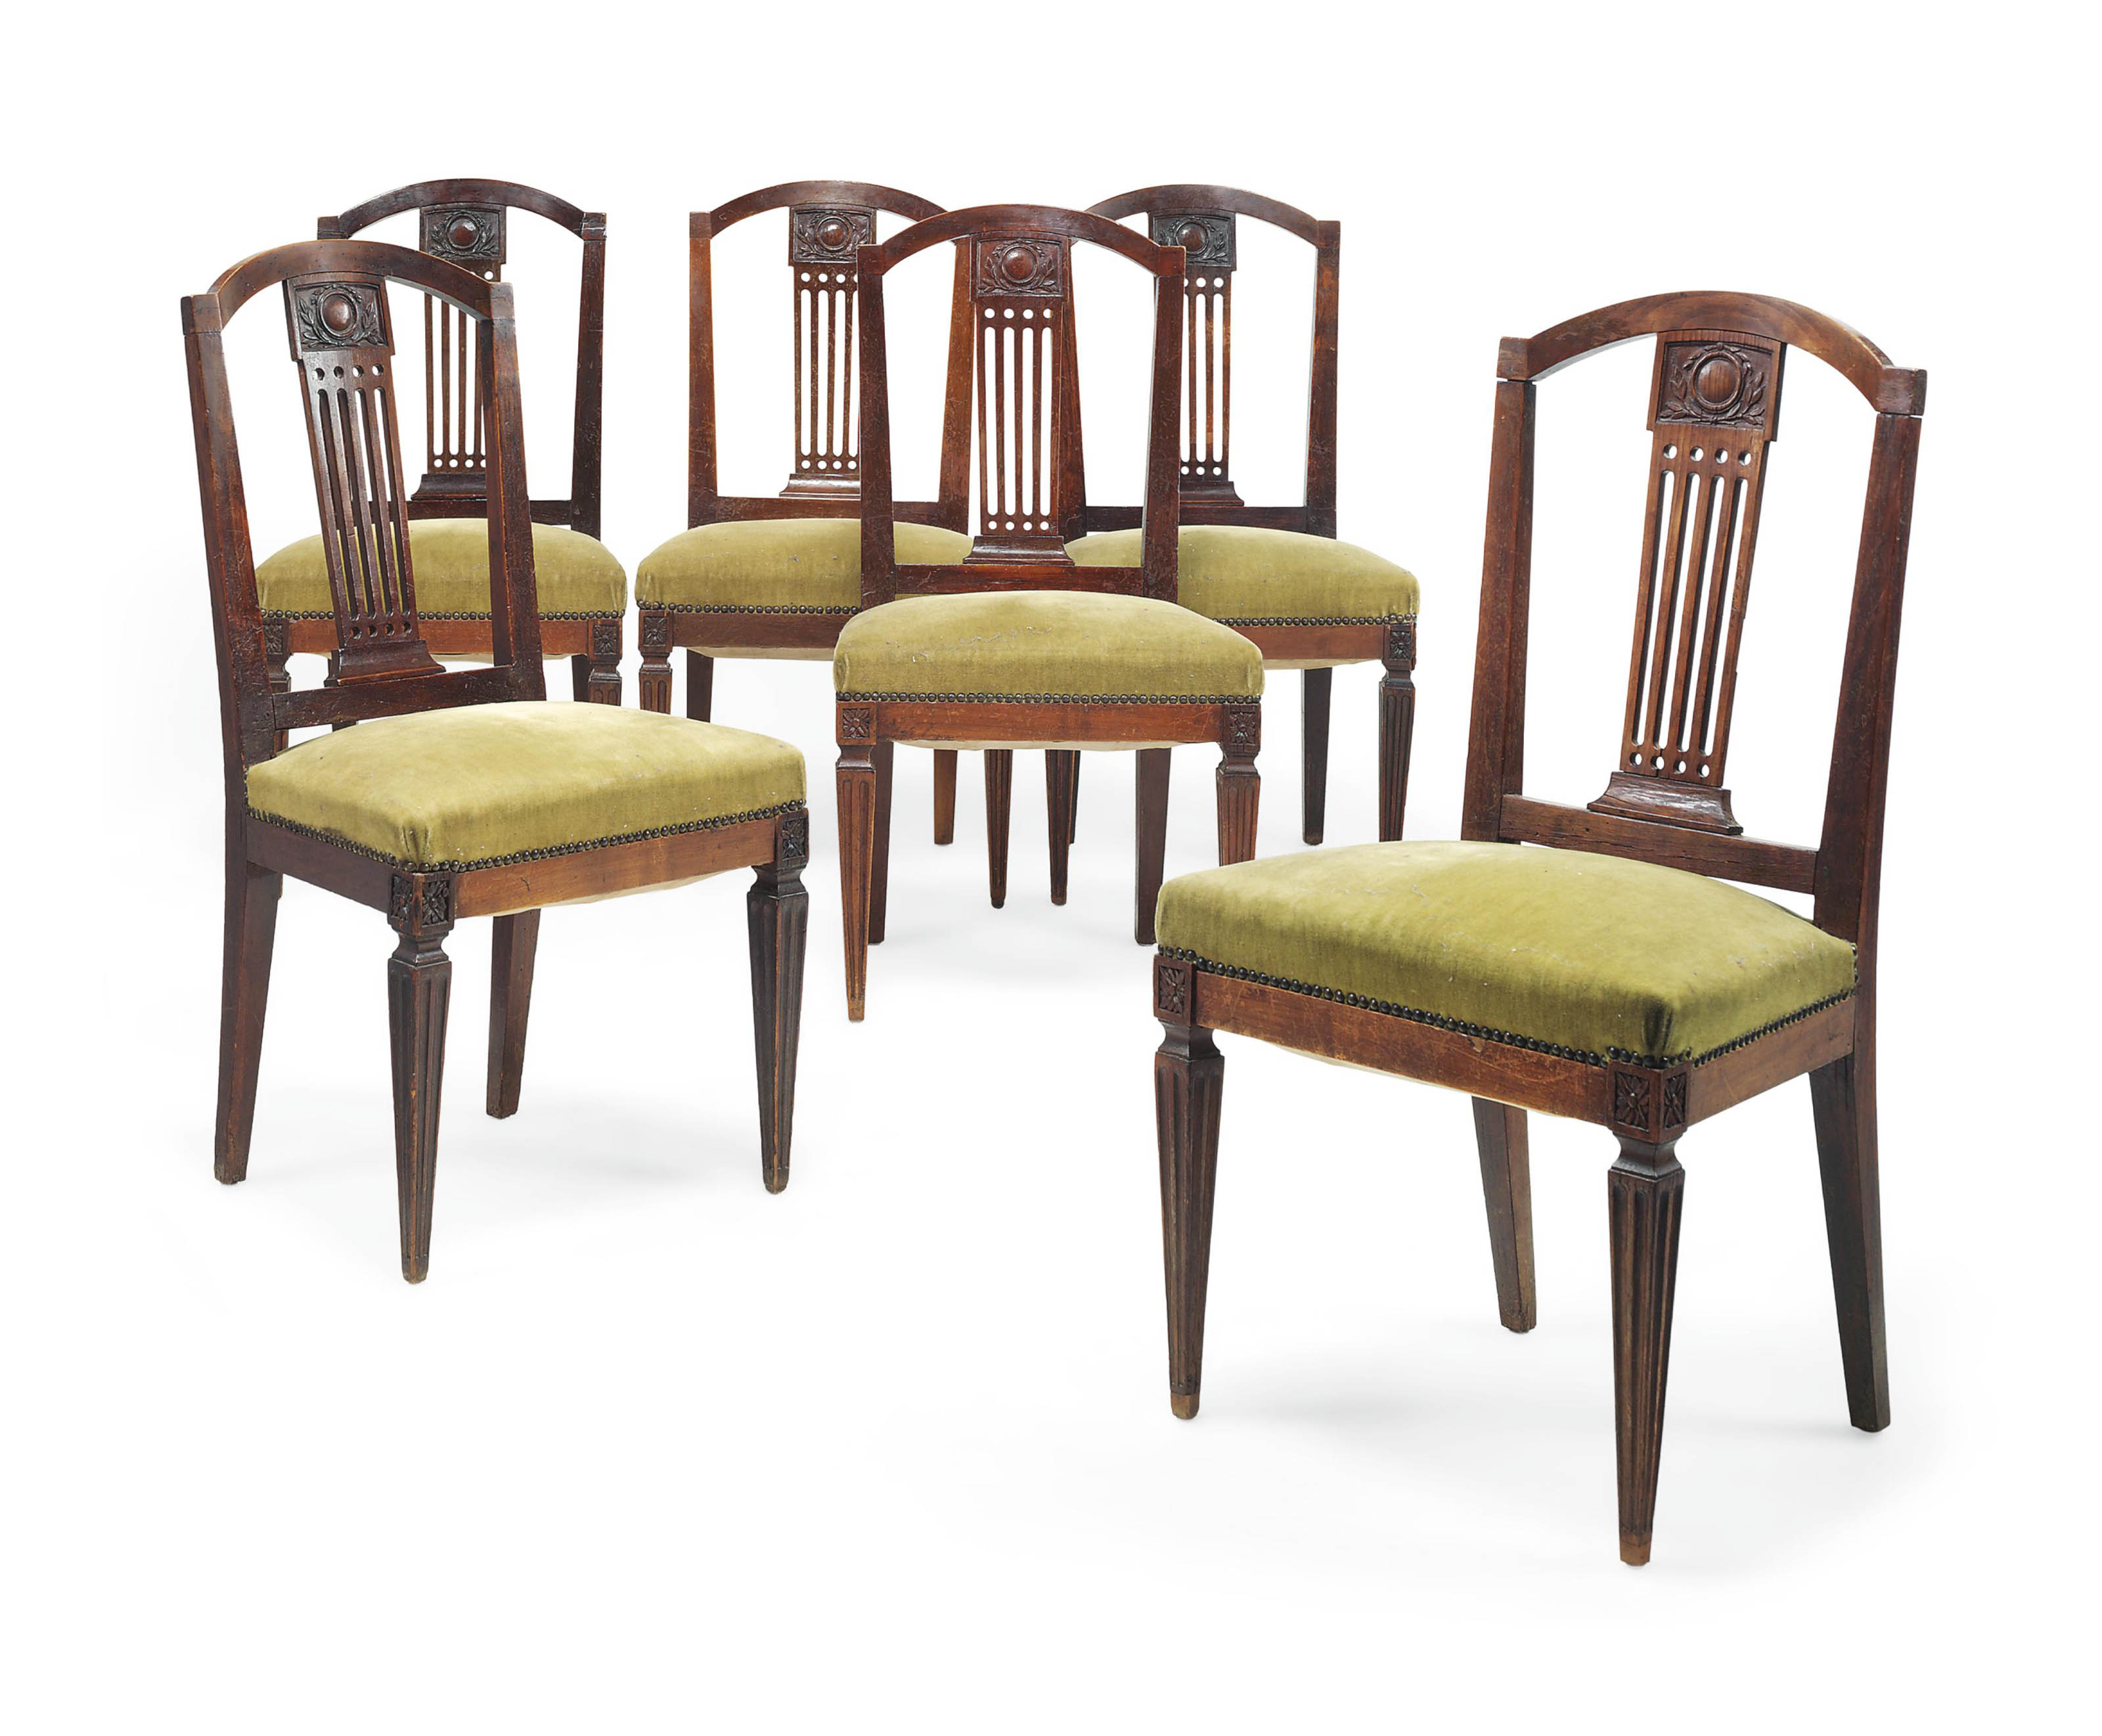 A SET OF SIX FRENCH PROVINCIAL FRUITWOOD DINING CHAIRS